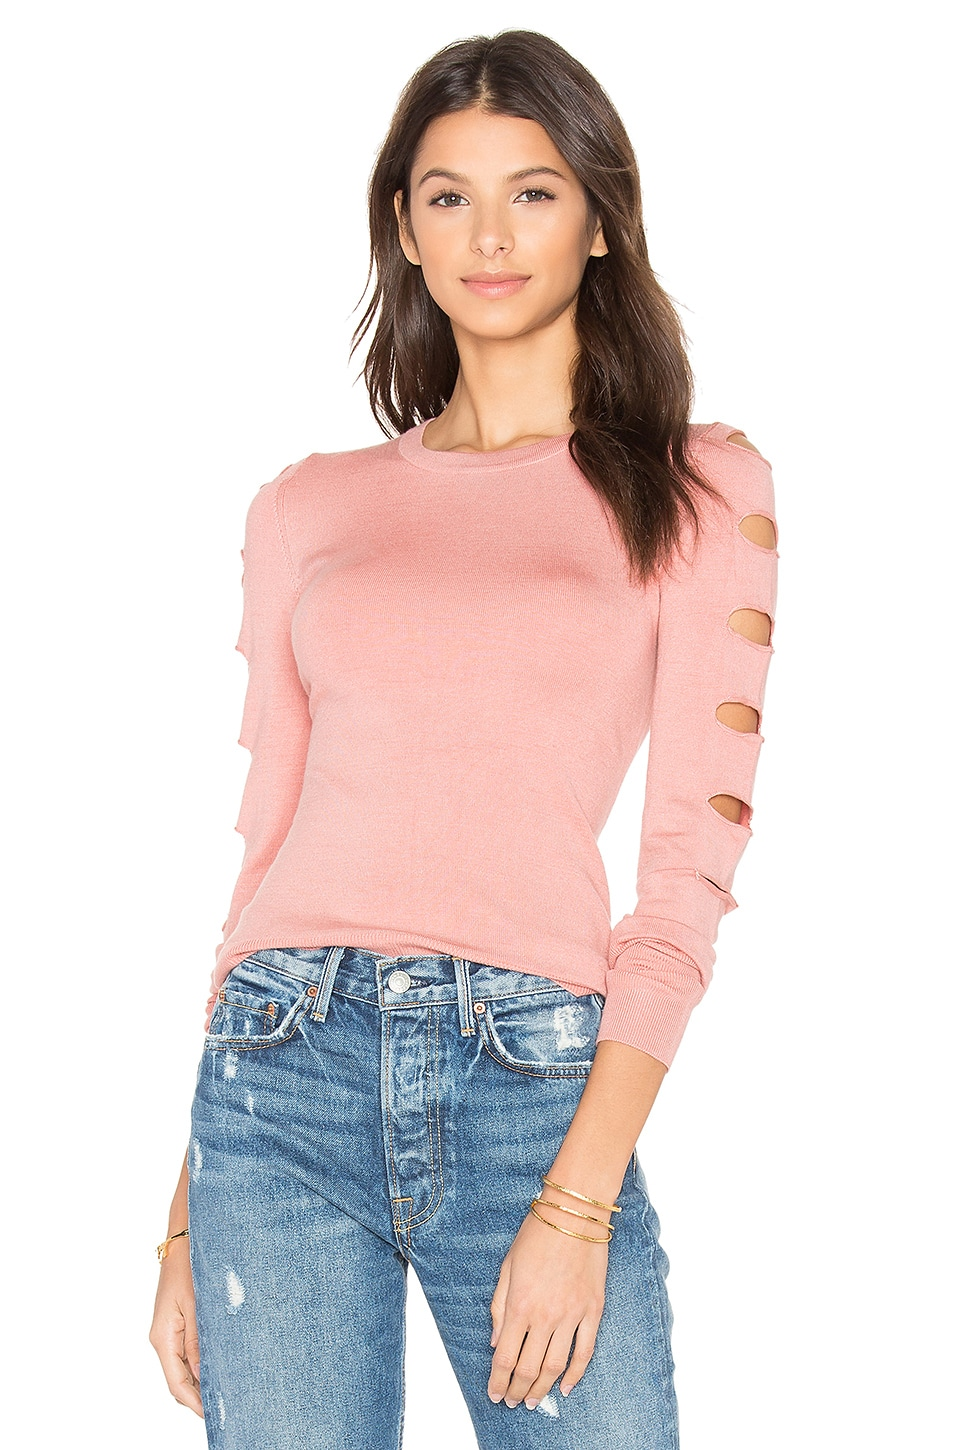 Central Park West Palm Springs Cut Out Sweater in Salmon